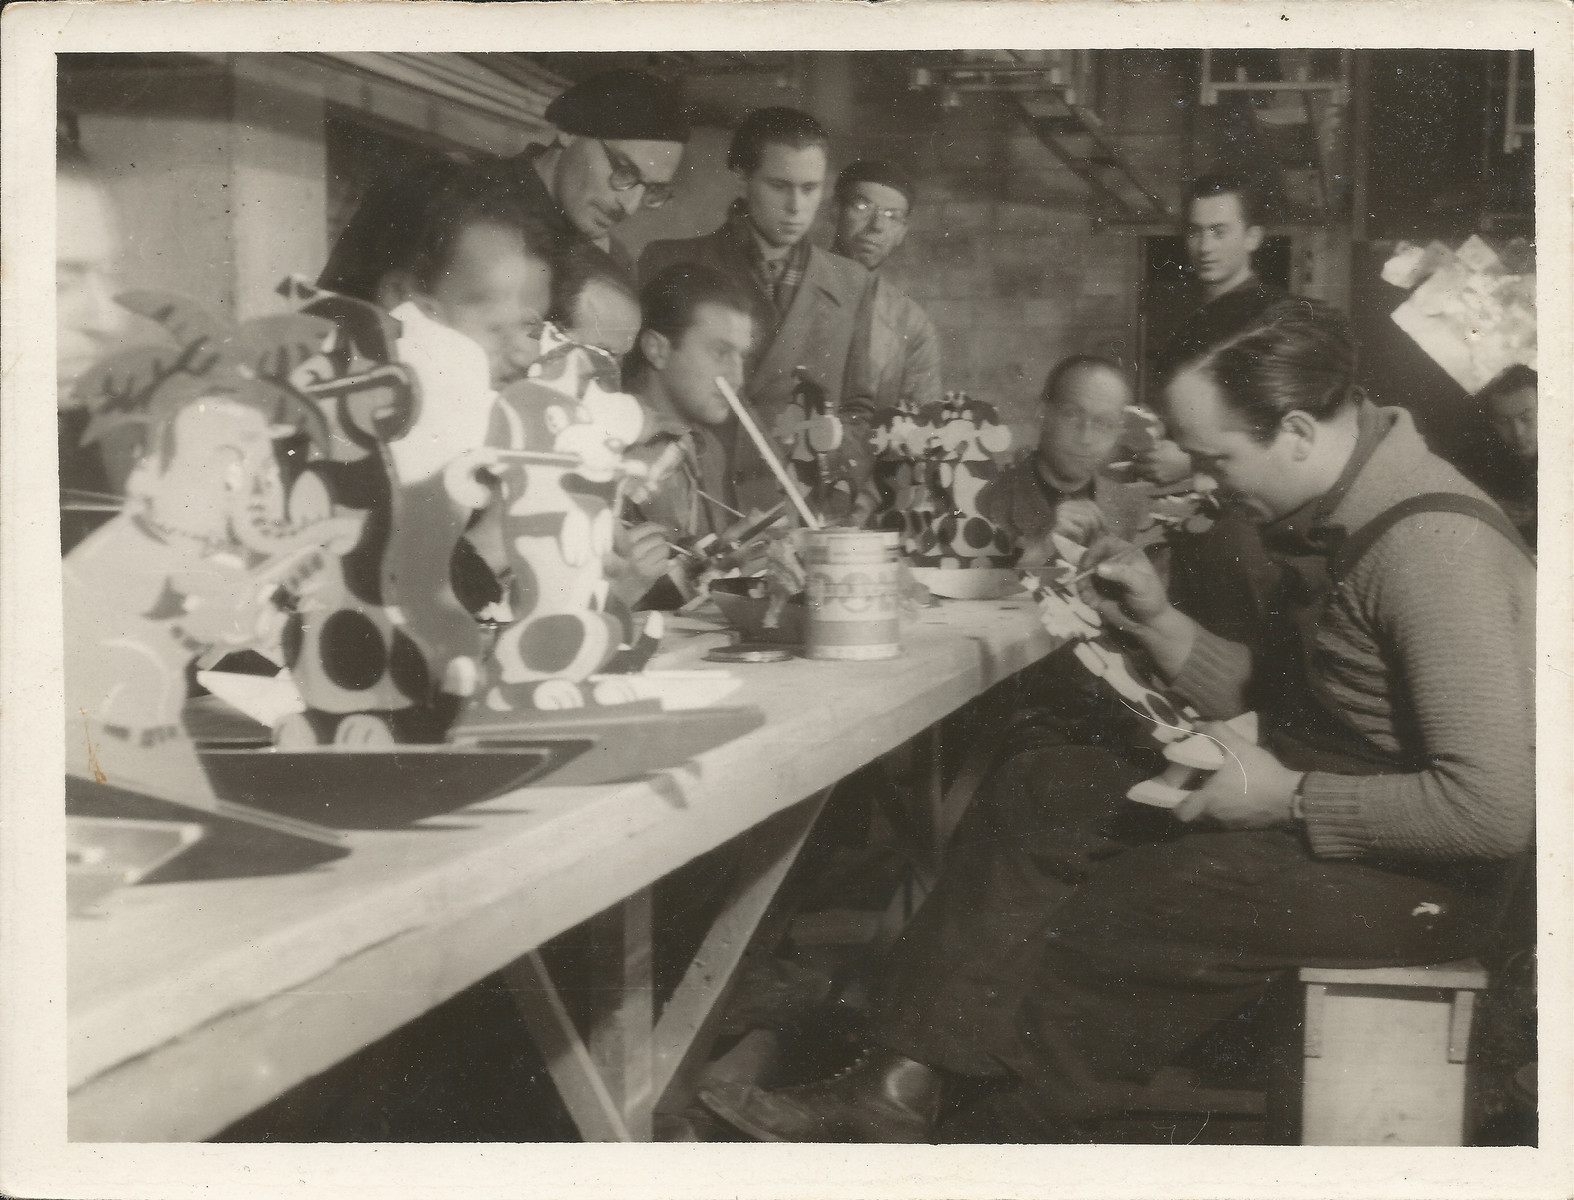 Internees decorate toys in a workshop in Les Milles.  Siegfried Lindheimer is pictured first row, right.